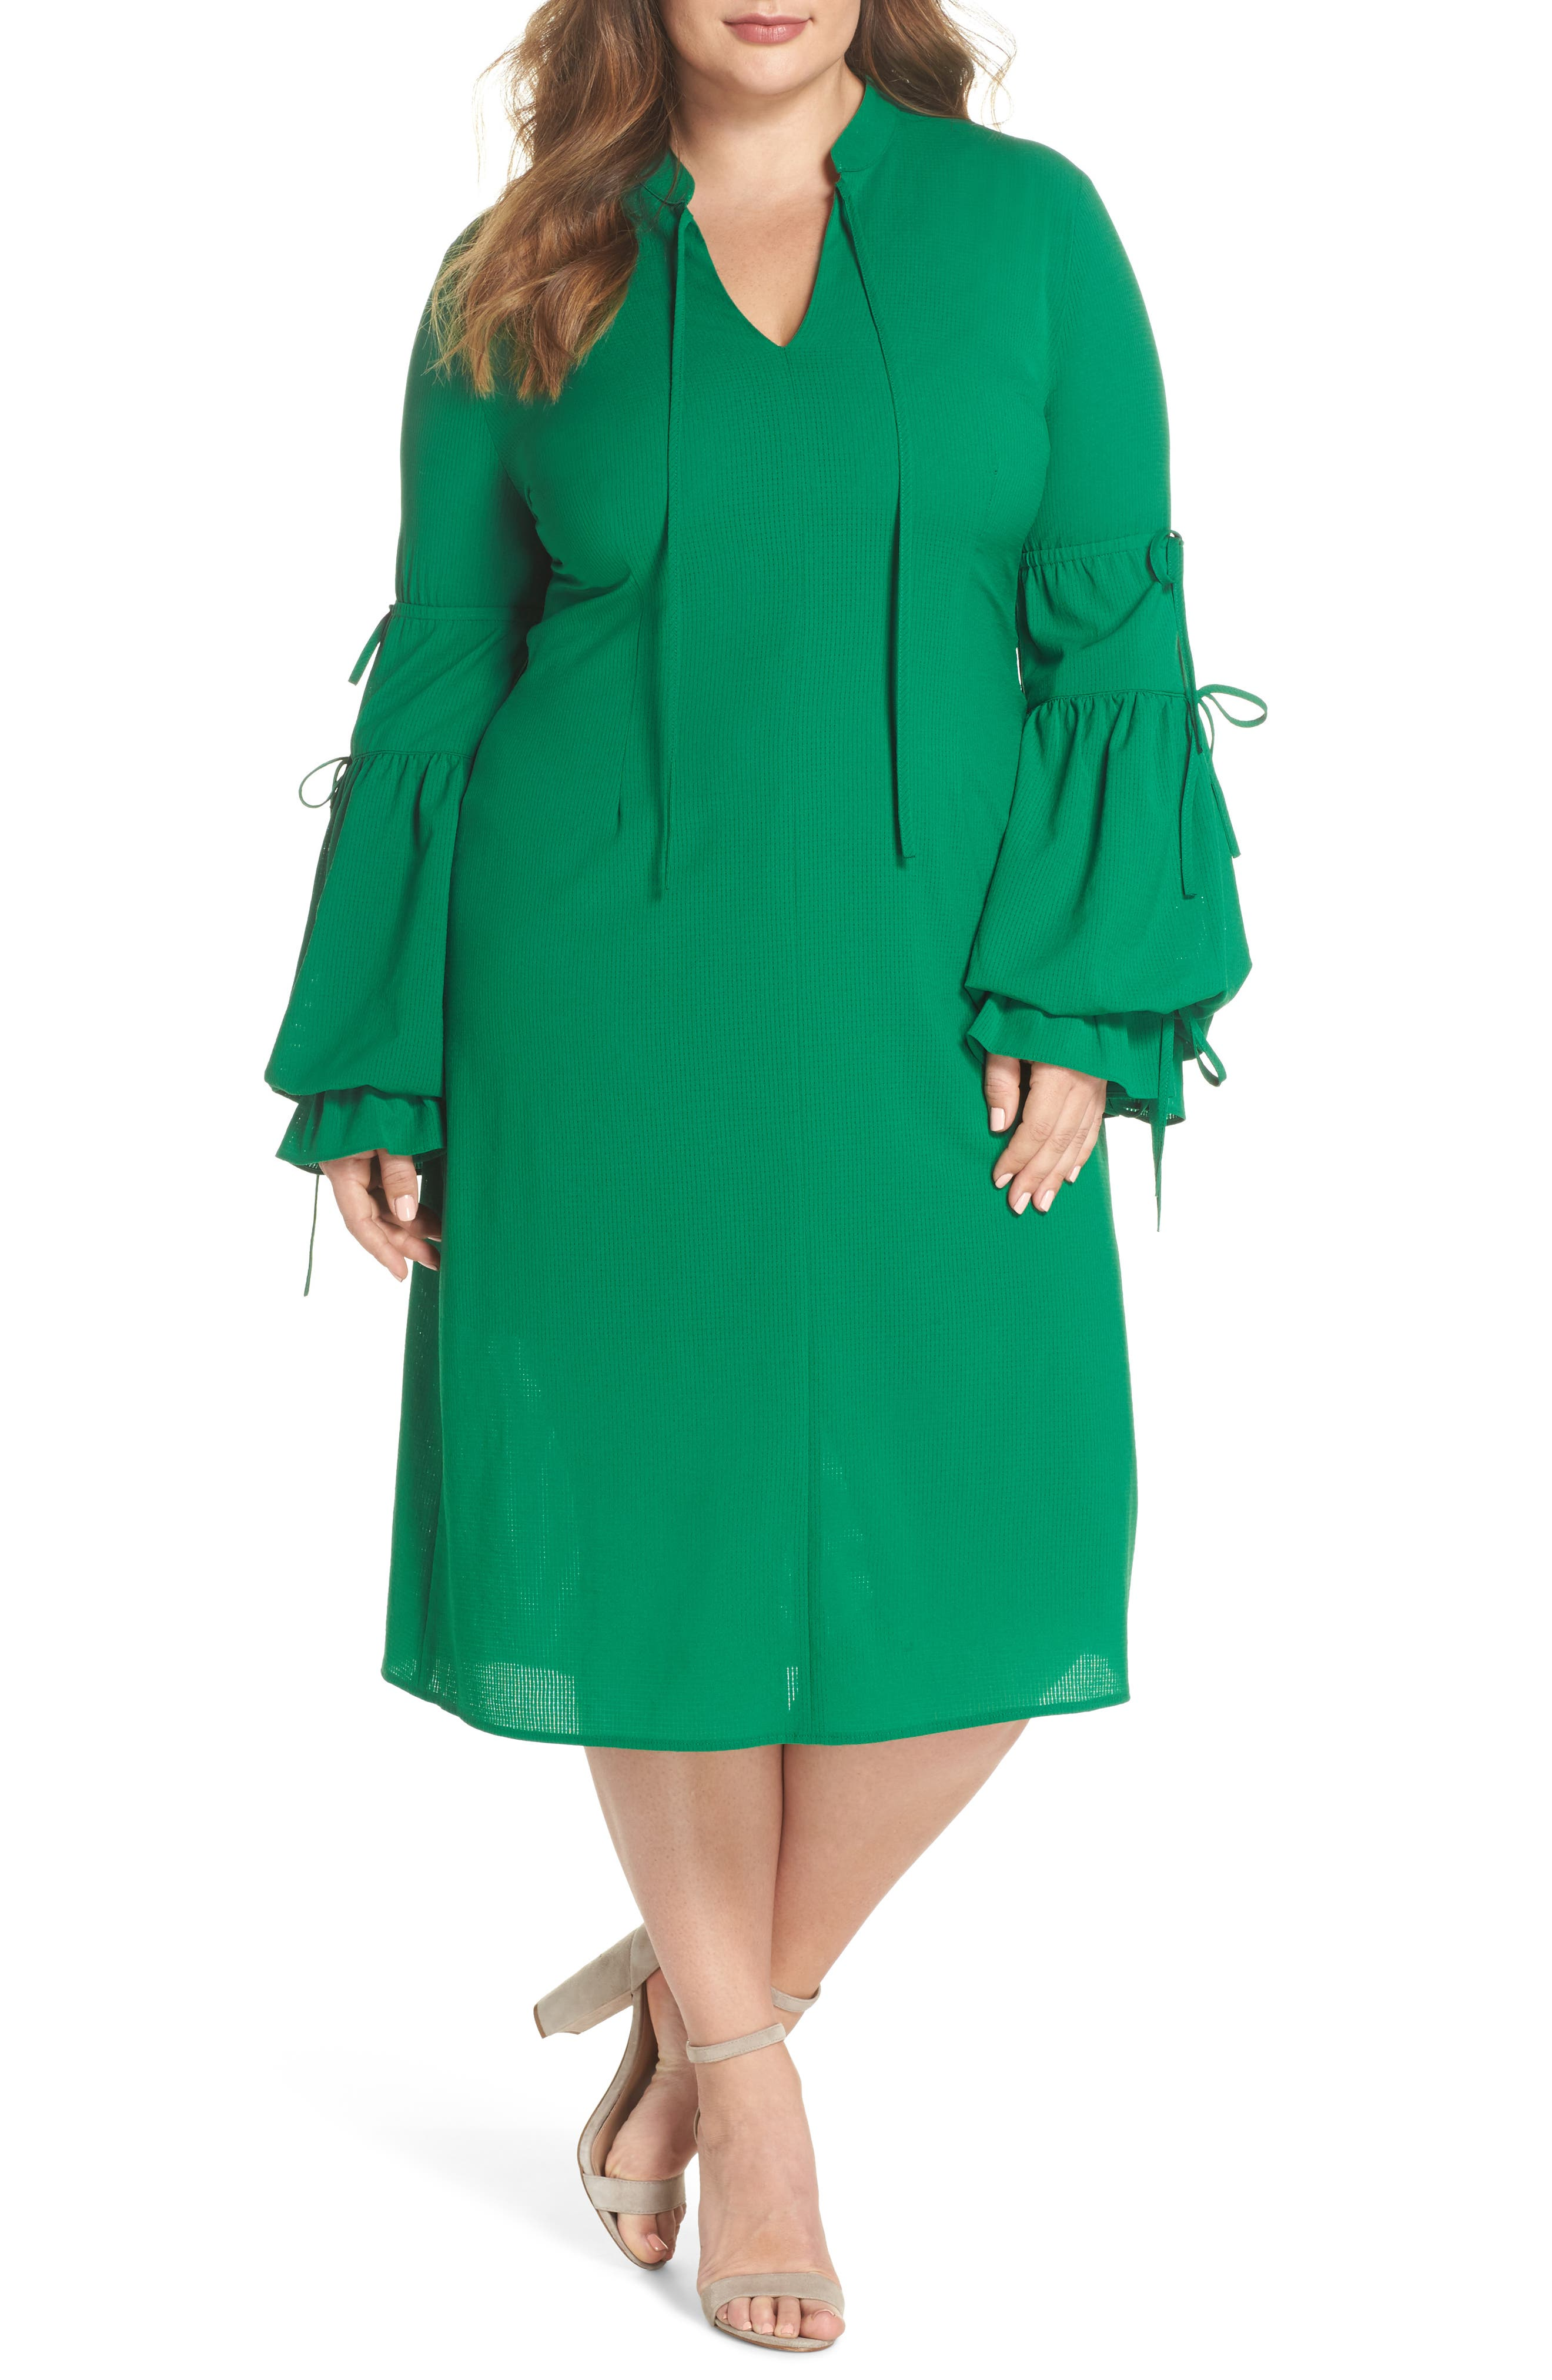 Leiko Antoinette Puff Sleeve Tea Dress,                             Main thumbnail 1, color,                             Green